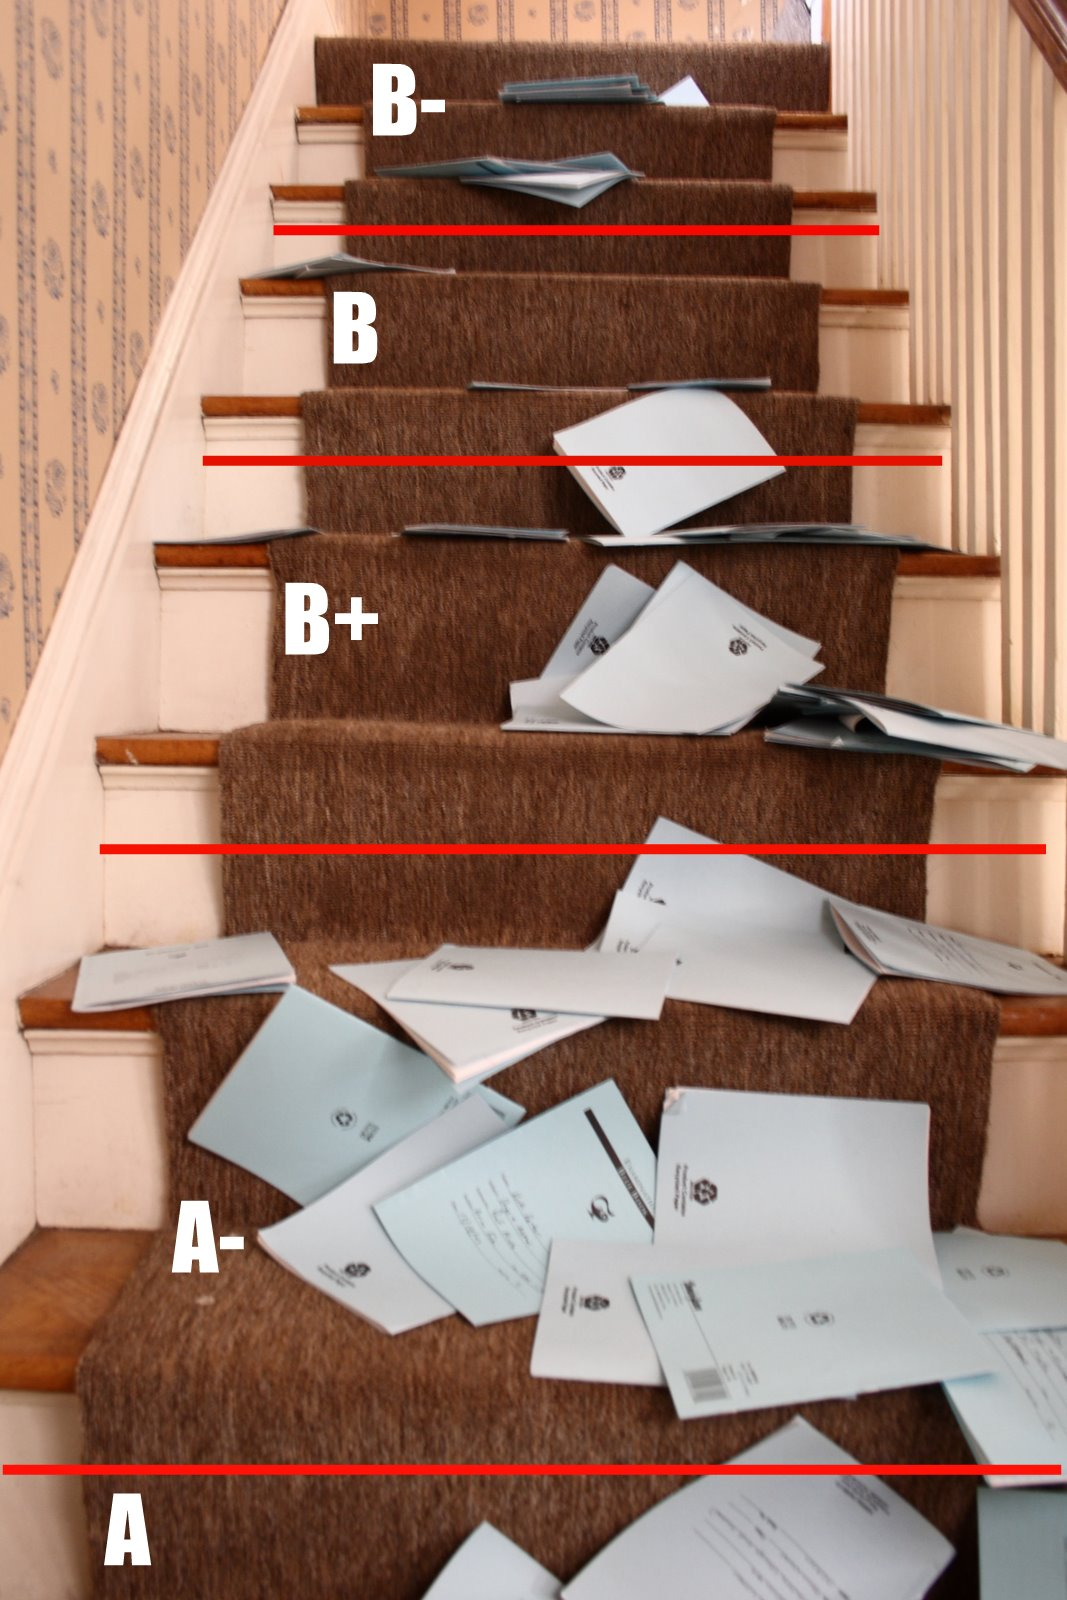 Image of papers strewn about a staircase with random grades posted on each step